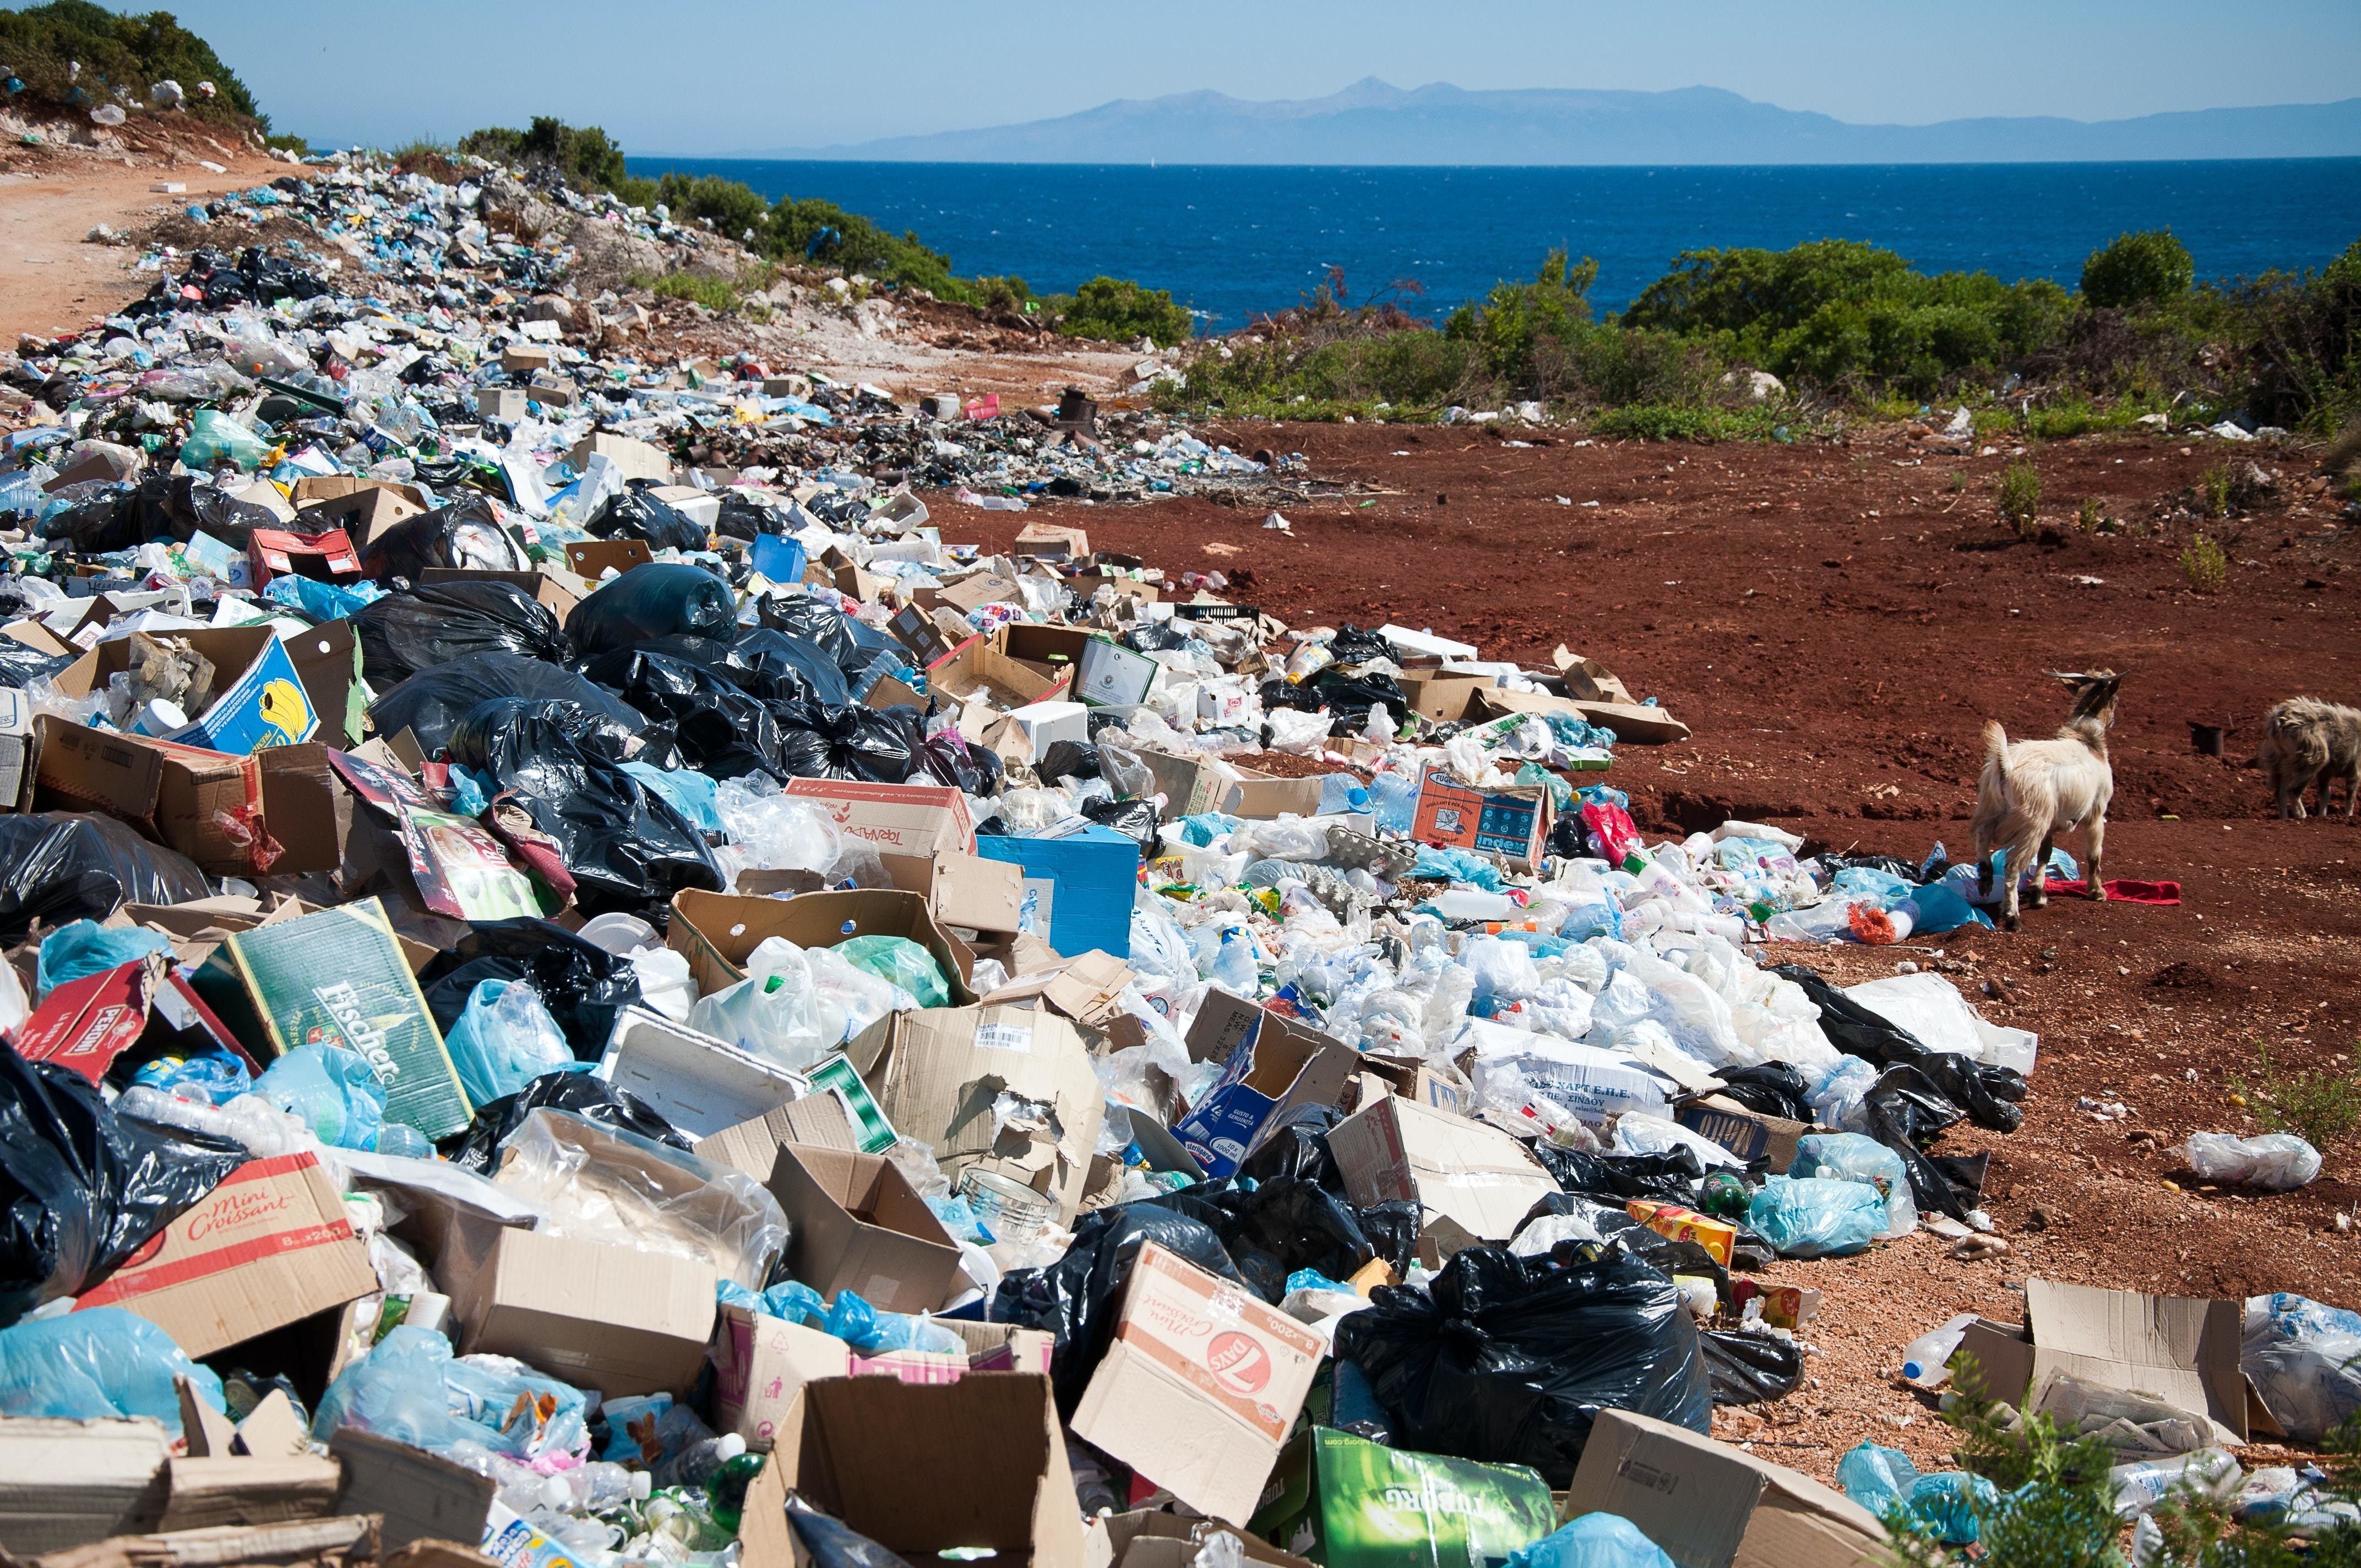 plastic waste, shown here, is a major global problem